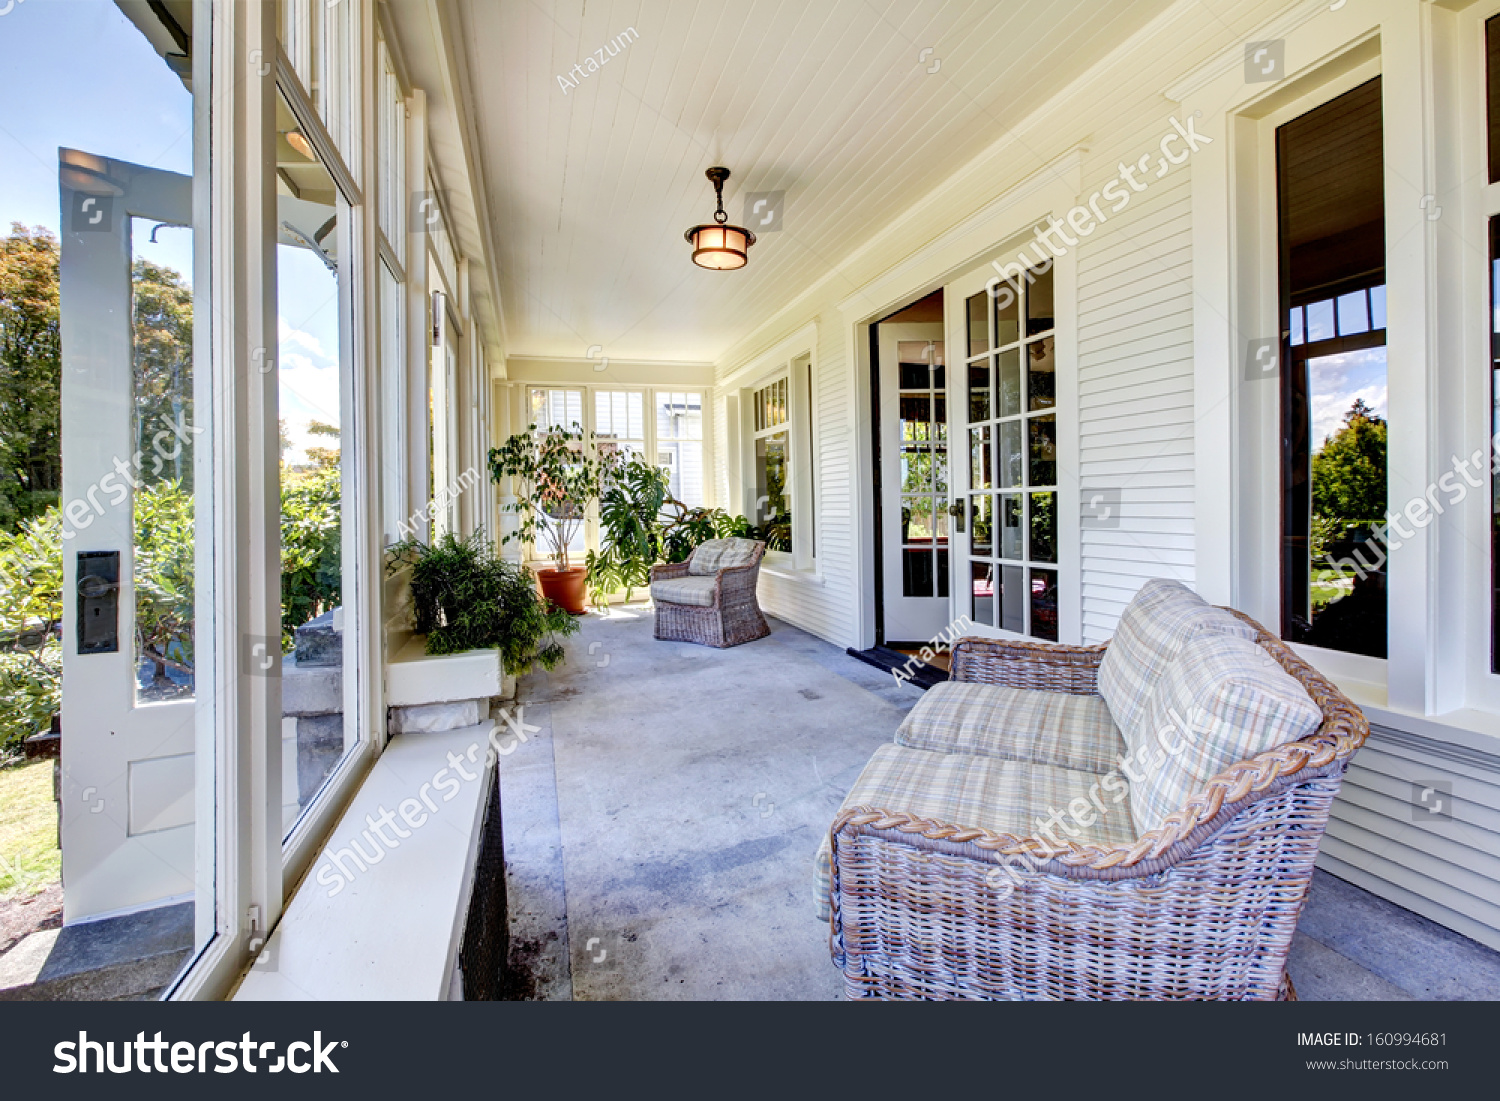 Porch Interior Old Classic American Craftsman Style Home